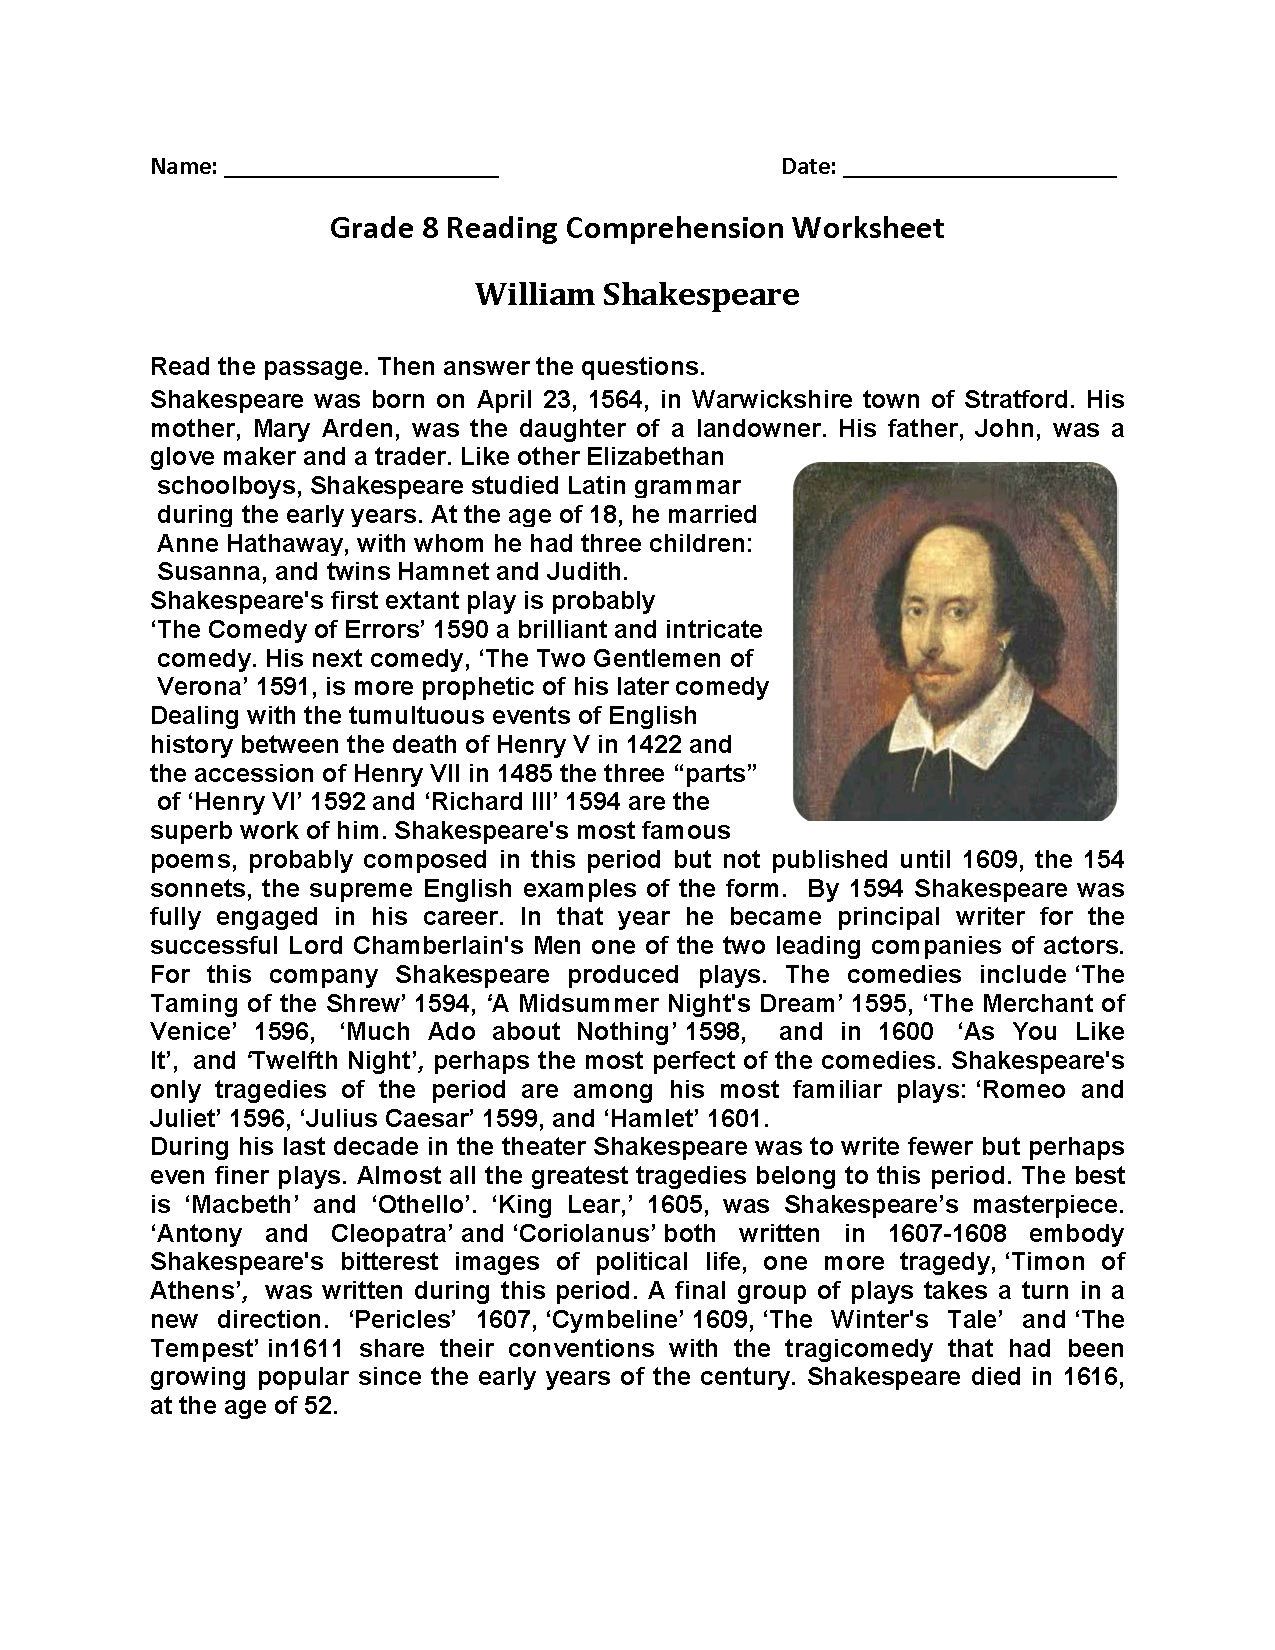 William Shakespeare Eighth Grade Reading Worksheets